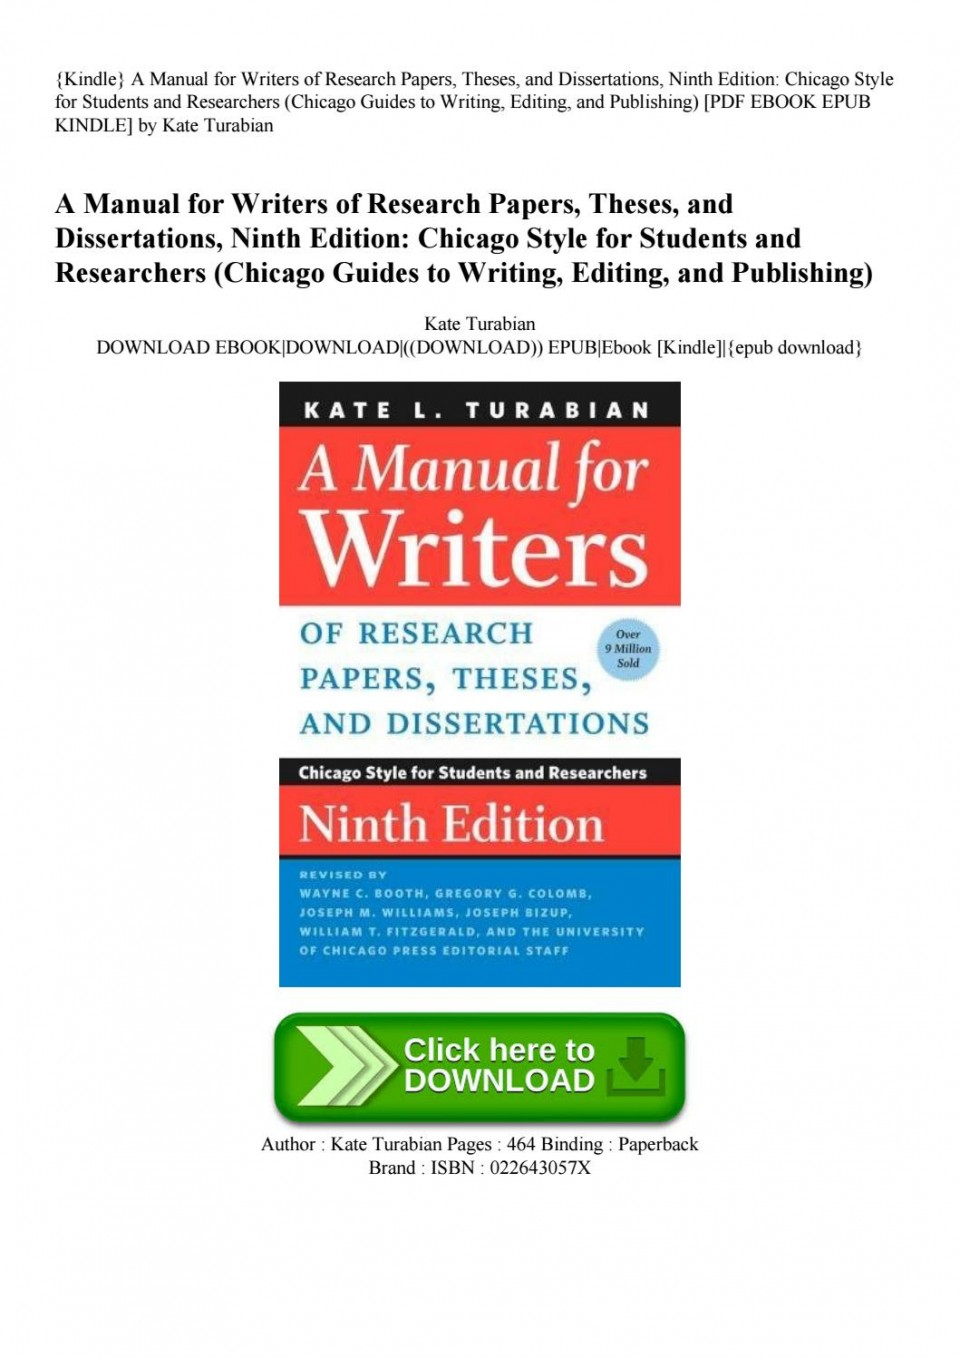 012 Research Paper Manual For Writers Of Papers Theses And Dissertations Page 1 Magnificent A Amazon 9th Edition Pdf 8th 13 960